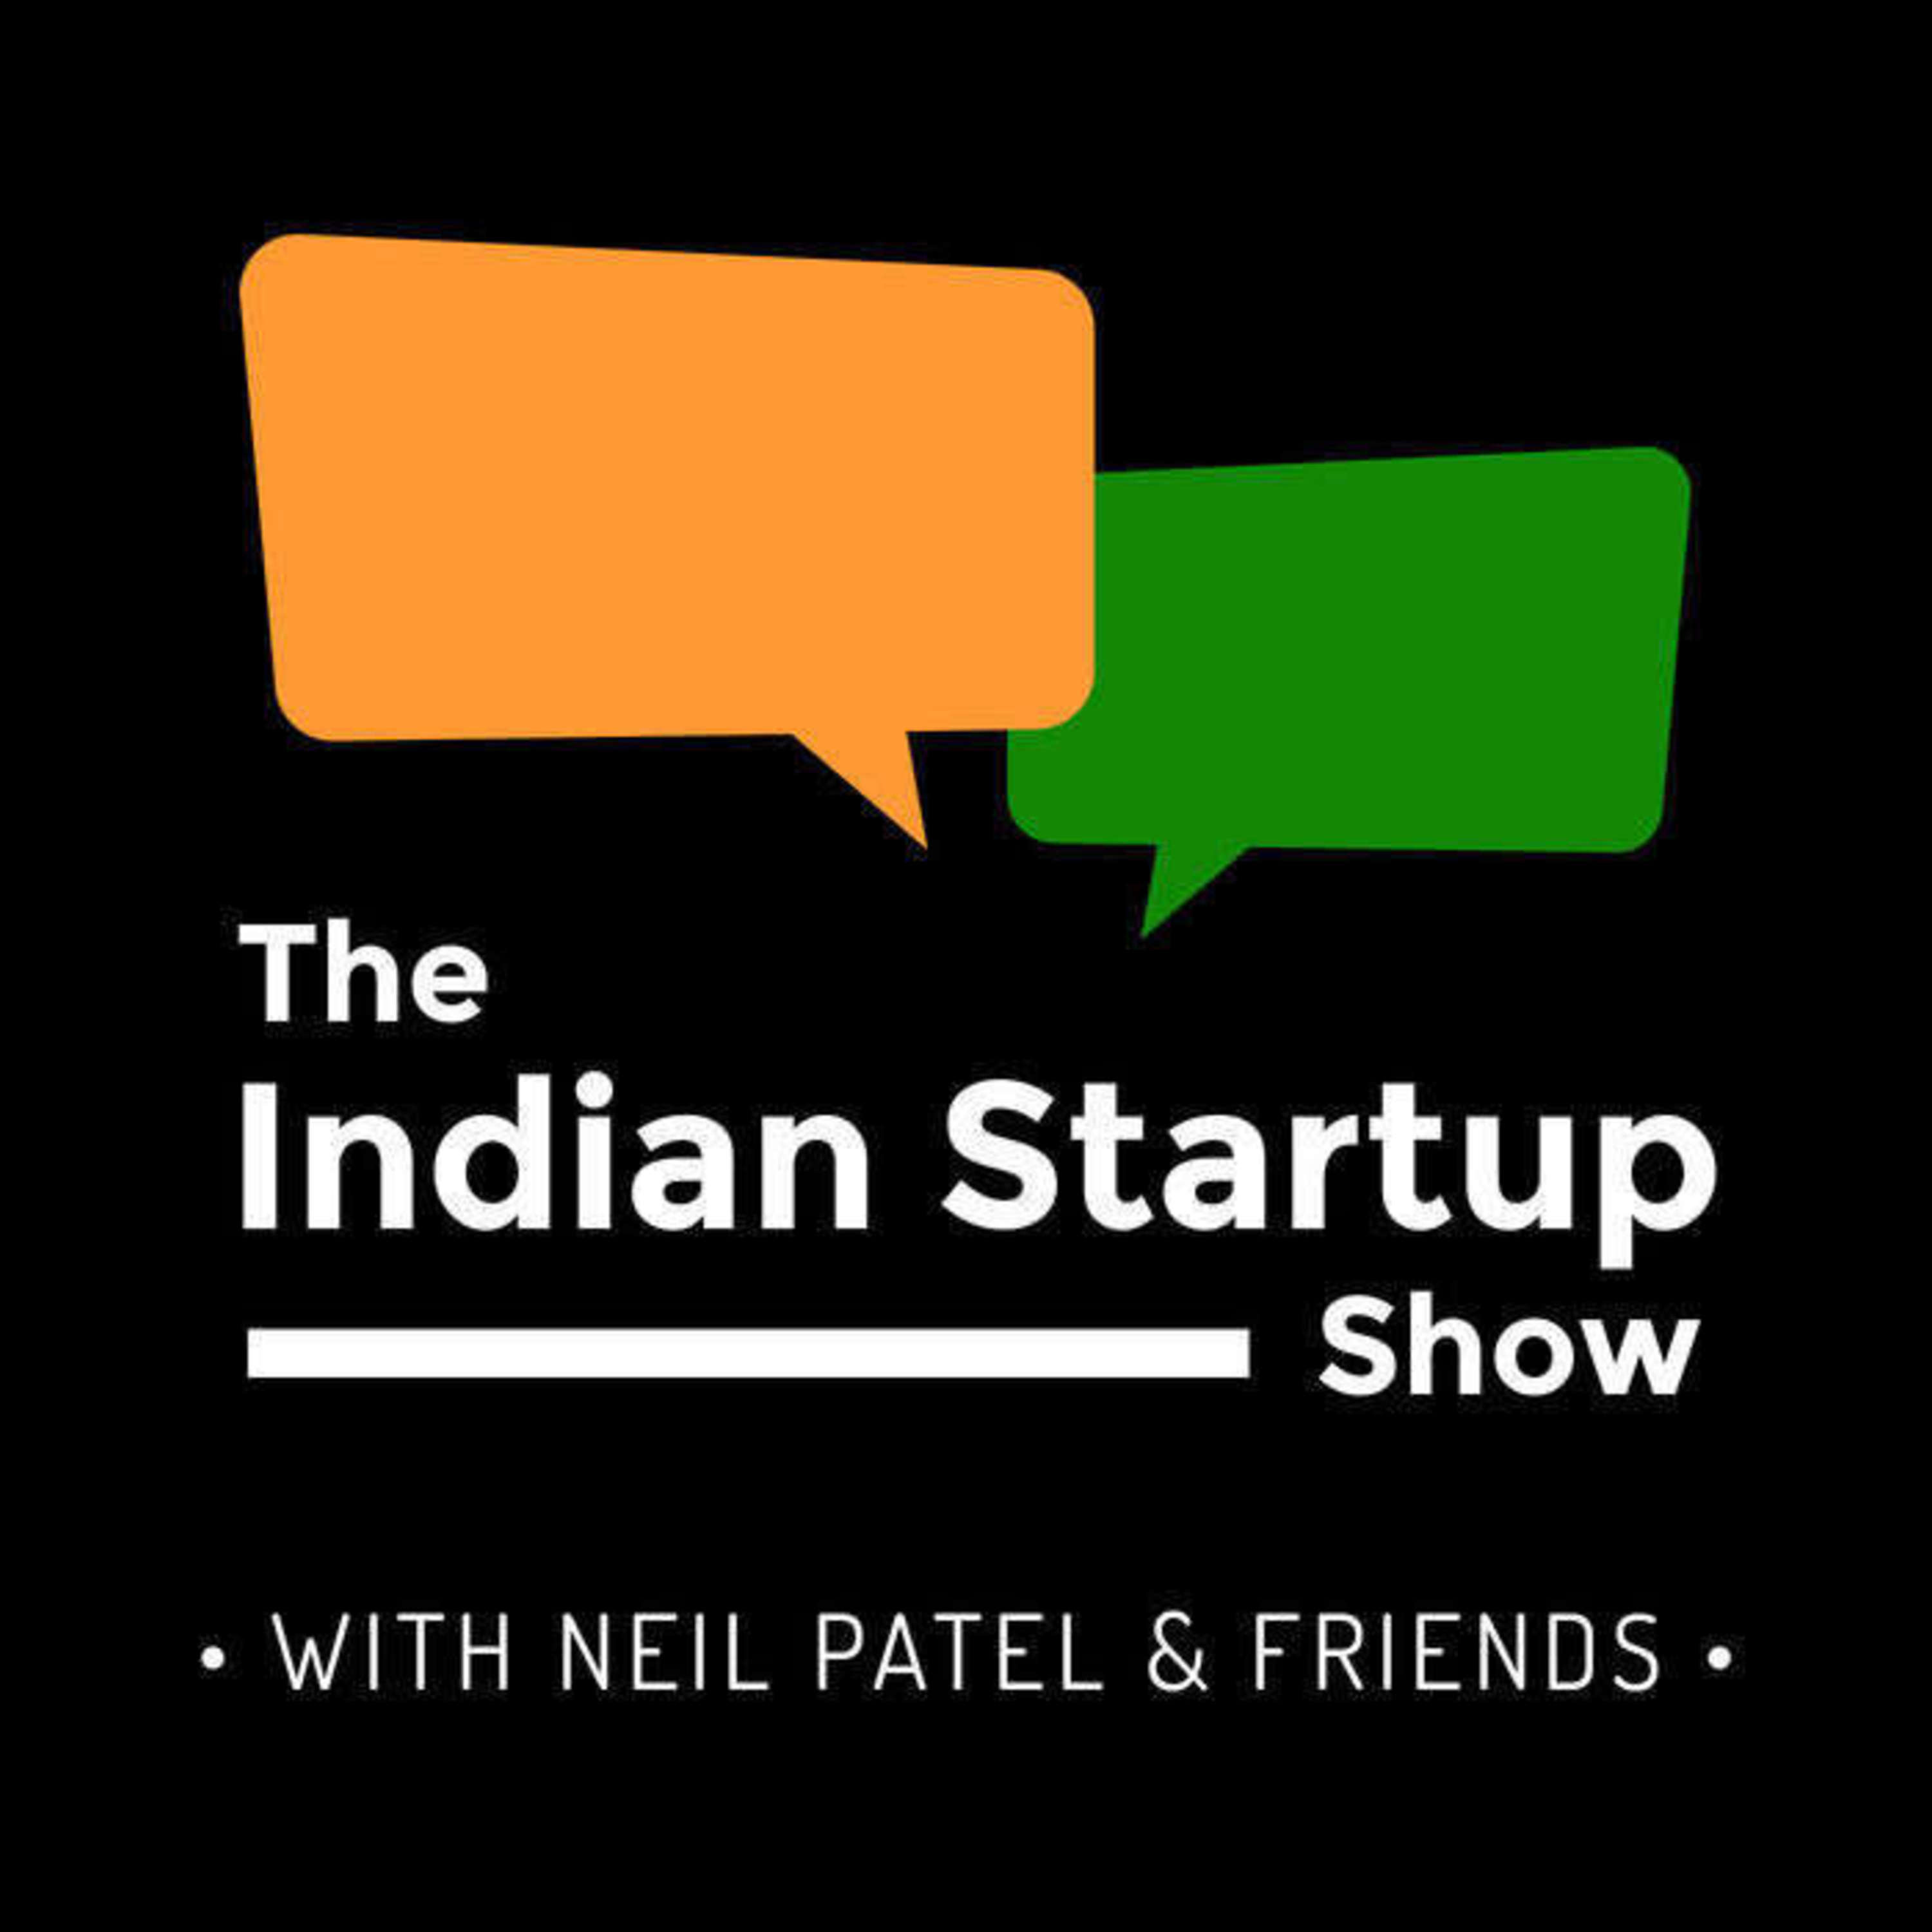 Chicken 2.0 - Dr Siddharth Manvati (Ph.D) Co-Founder of Clear Meat. On building India's first cell based meat company